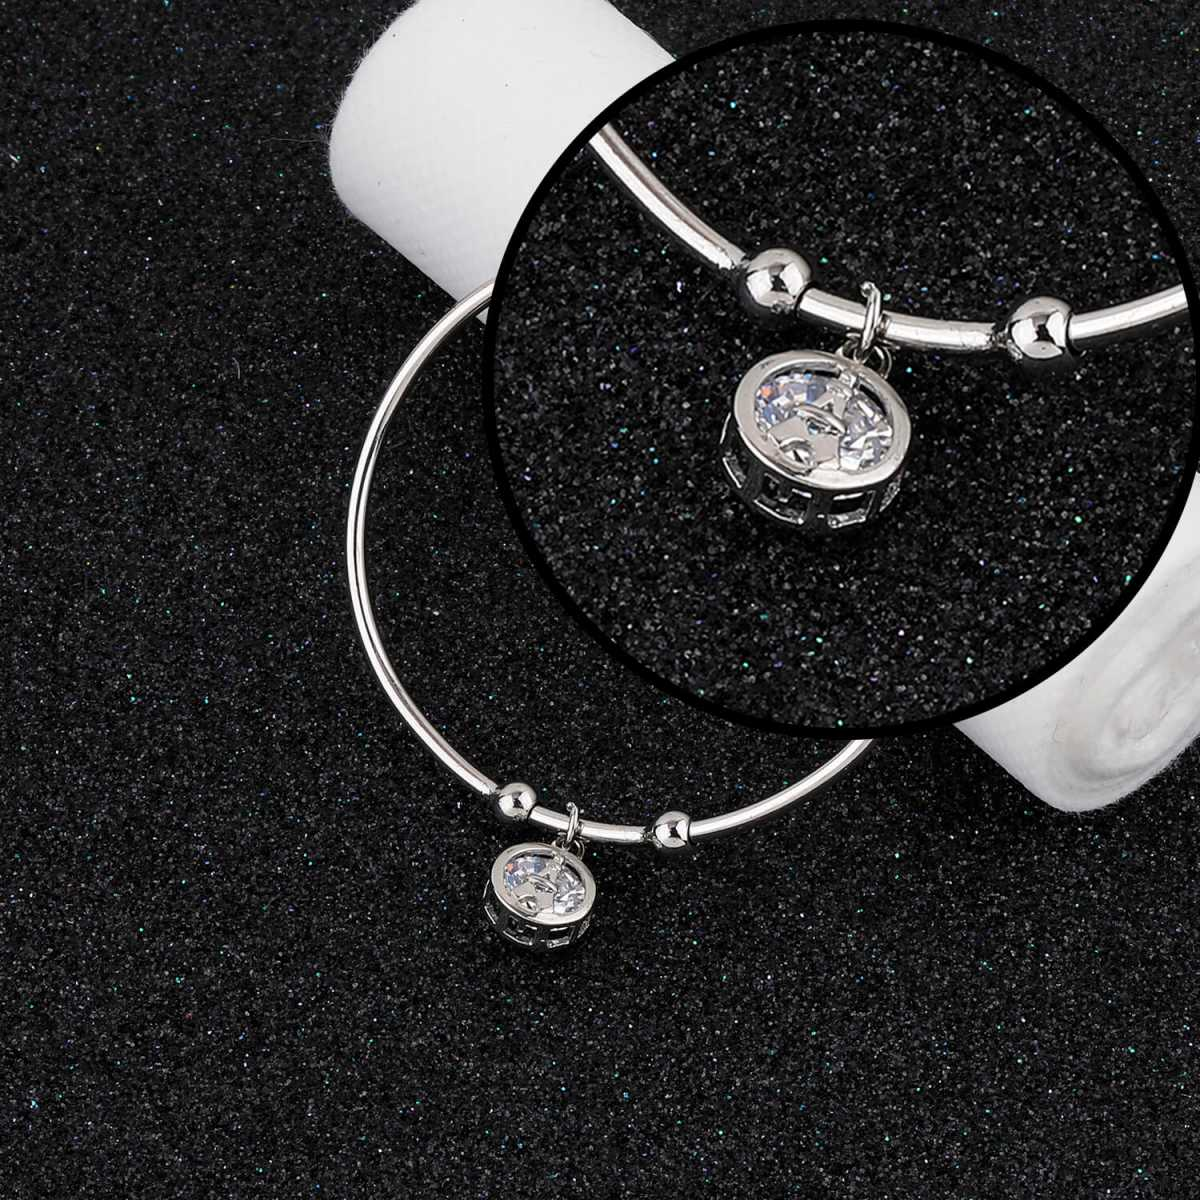 SILVER SHINE Party Wear Charm Delicated  Adjustable Bracelet With Diamond For Women Girls